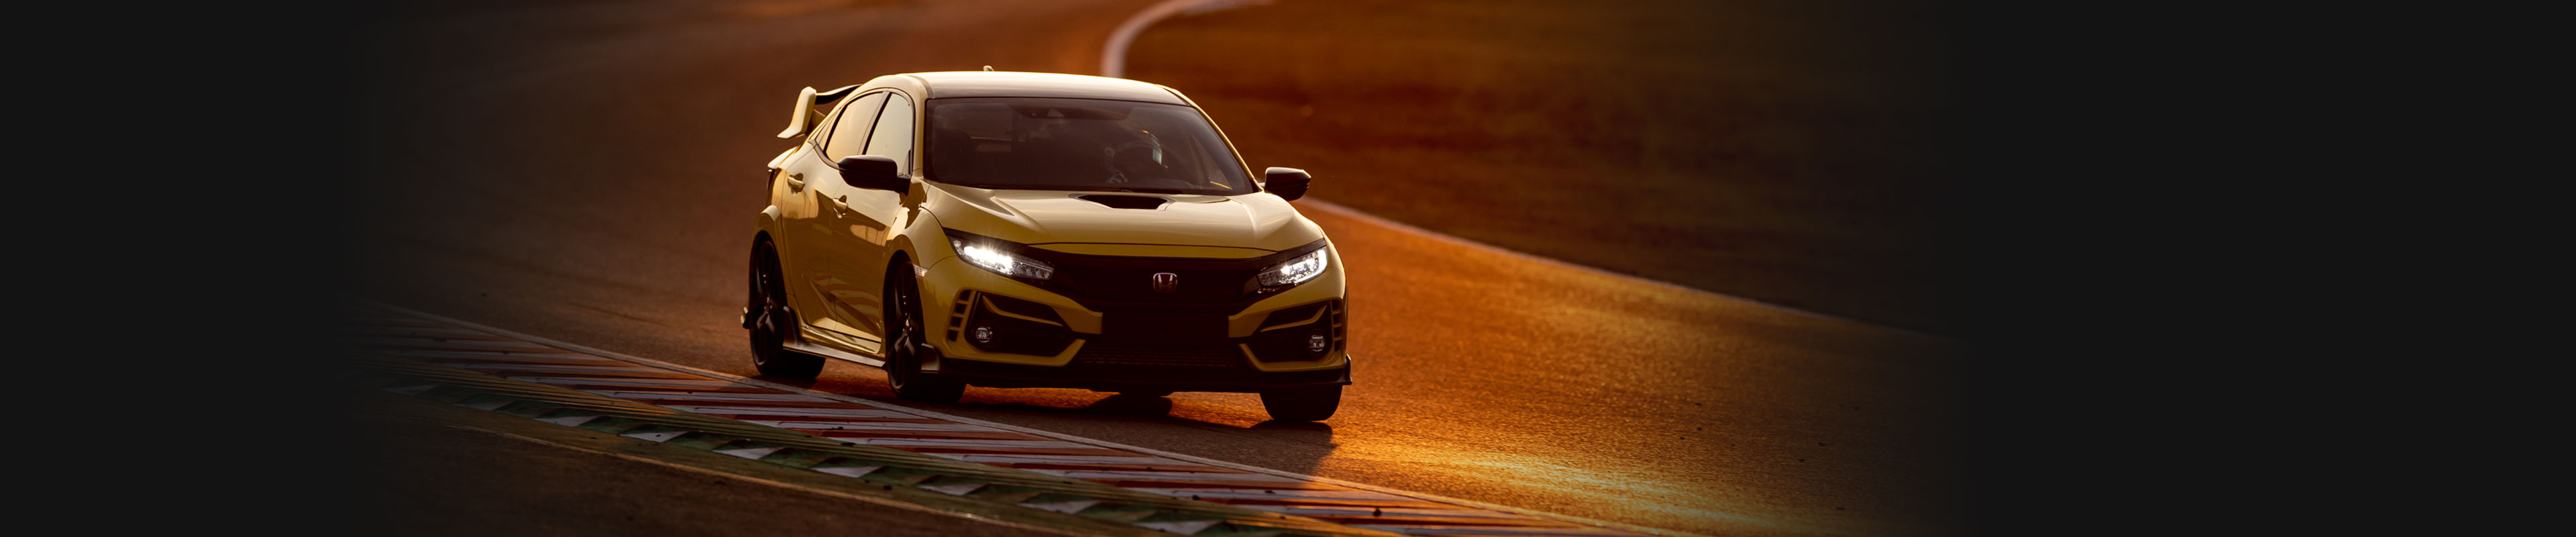 Front passenger-side view of a European-model 2021 Honda Civic Type R Limited Edition in Phoenix Yellow, driving on the Suzuka racetrack in Japan.